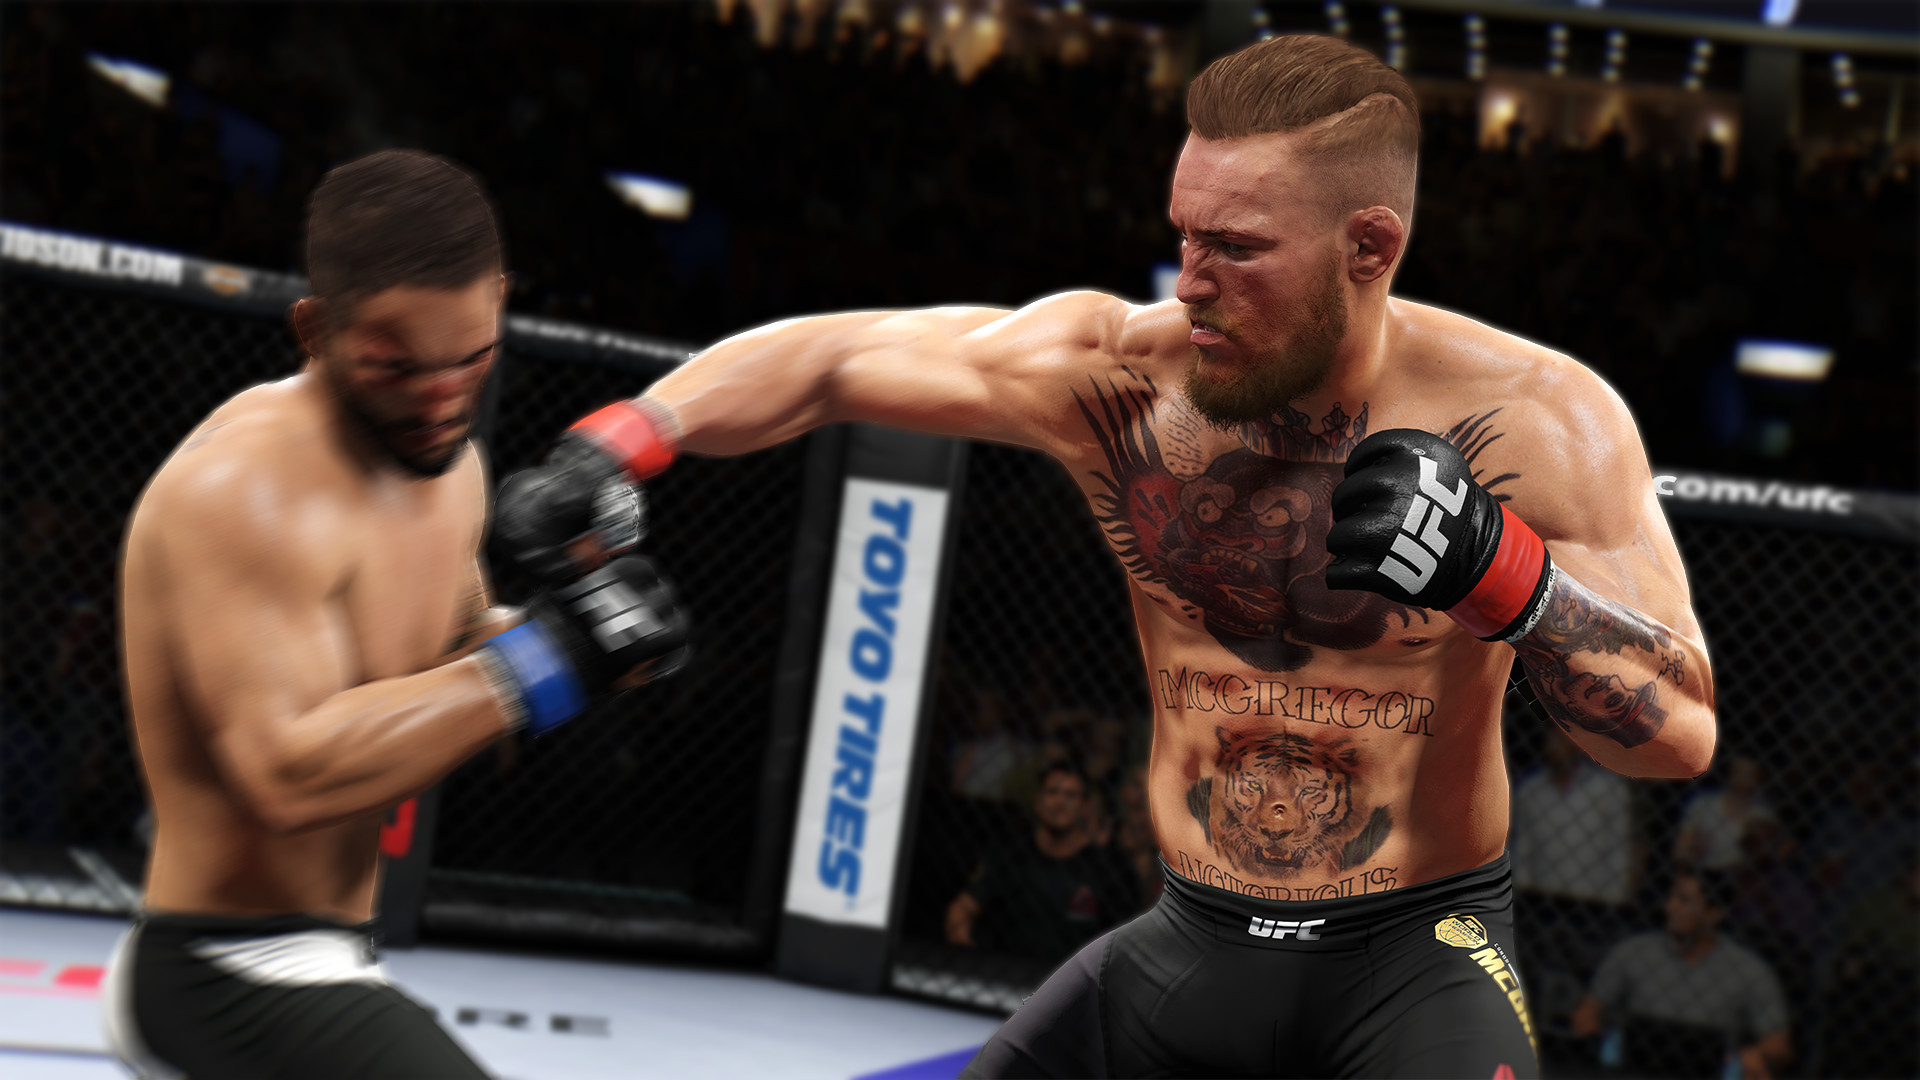 Image currently unavailable. Go to www.hack.generatorgame.com and choose EA Sports UFC image, you will be redirect to EA Sports UFC Generator site.